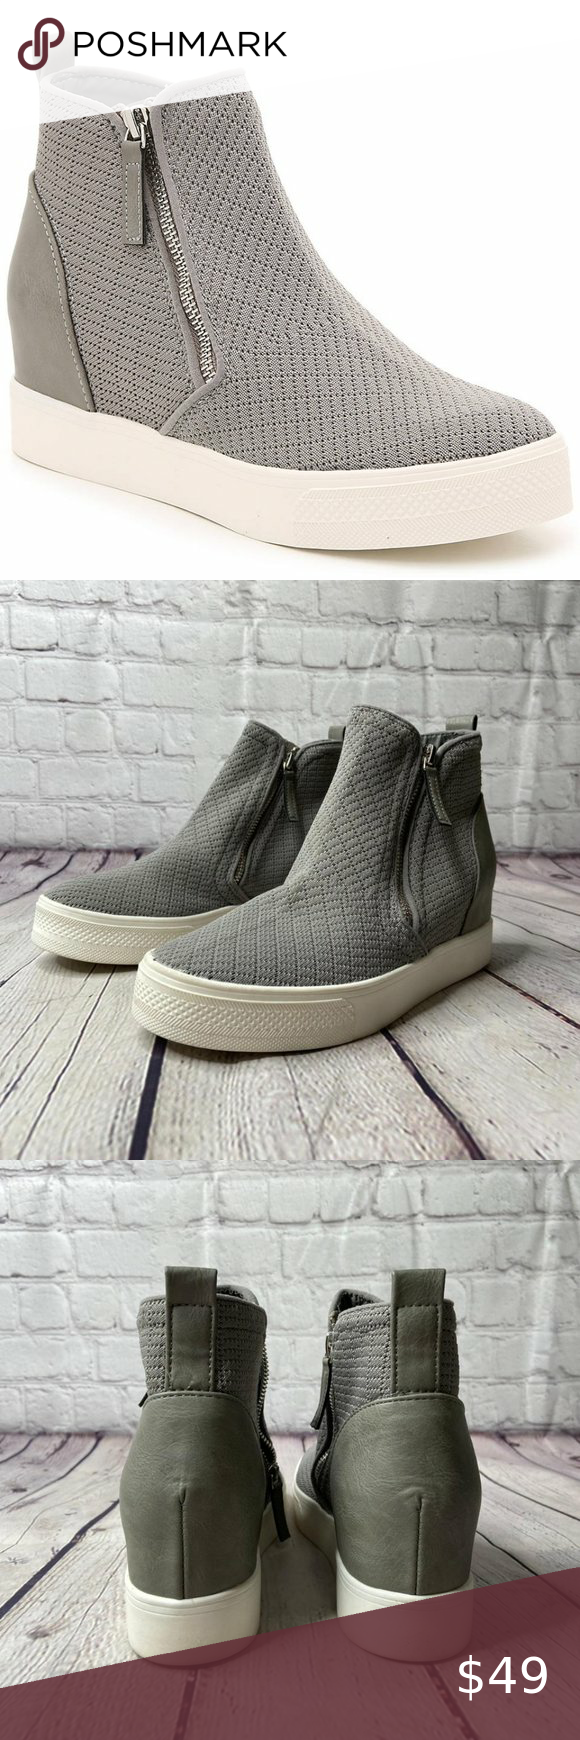 NWT Steve Madden Loxley Wedge High-Top